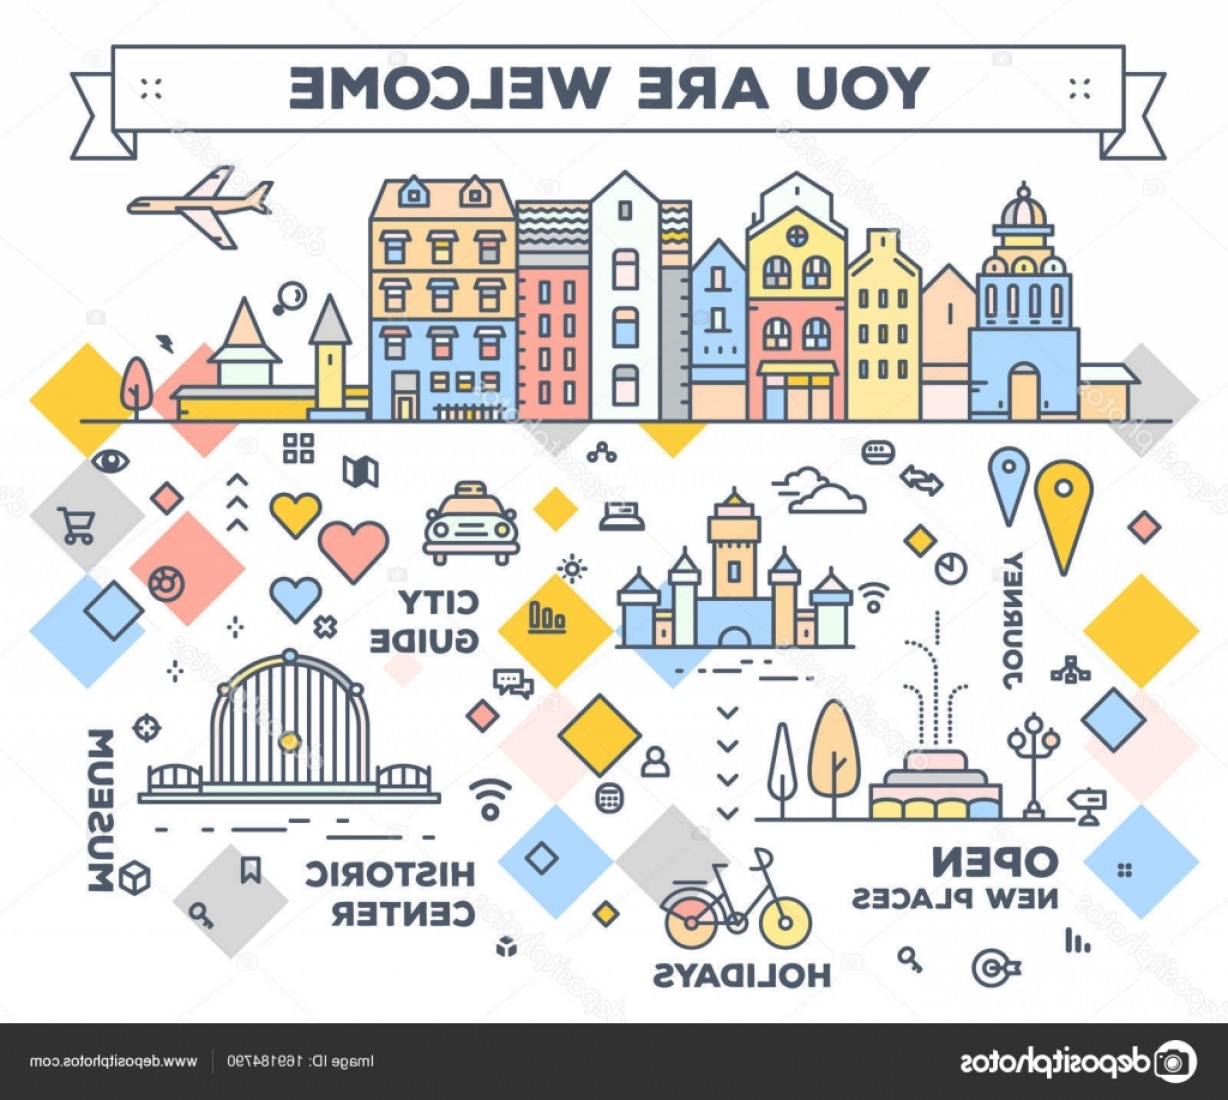 Open VI Stock Vector: Stock Illustration Vector Illustration Of City With